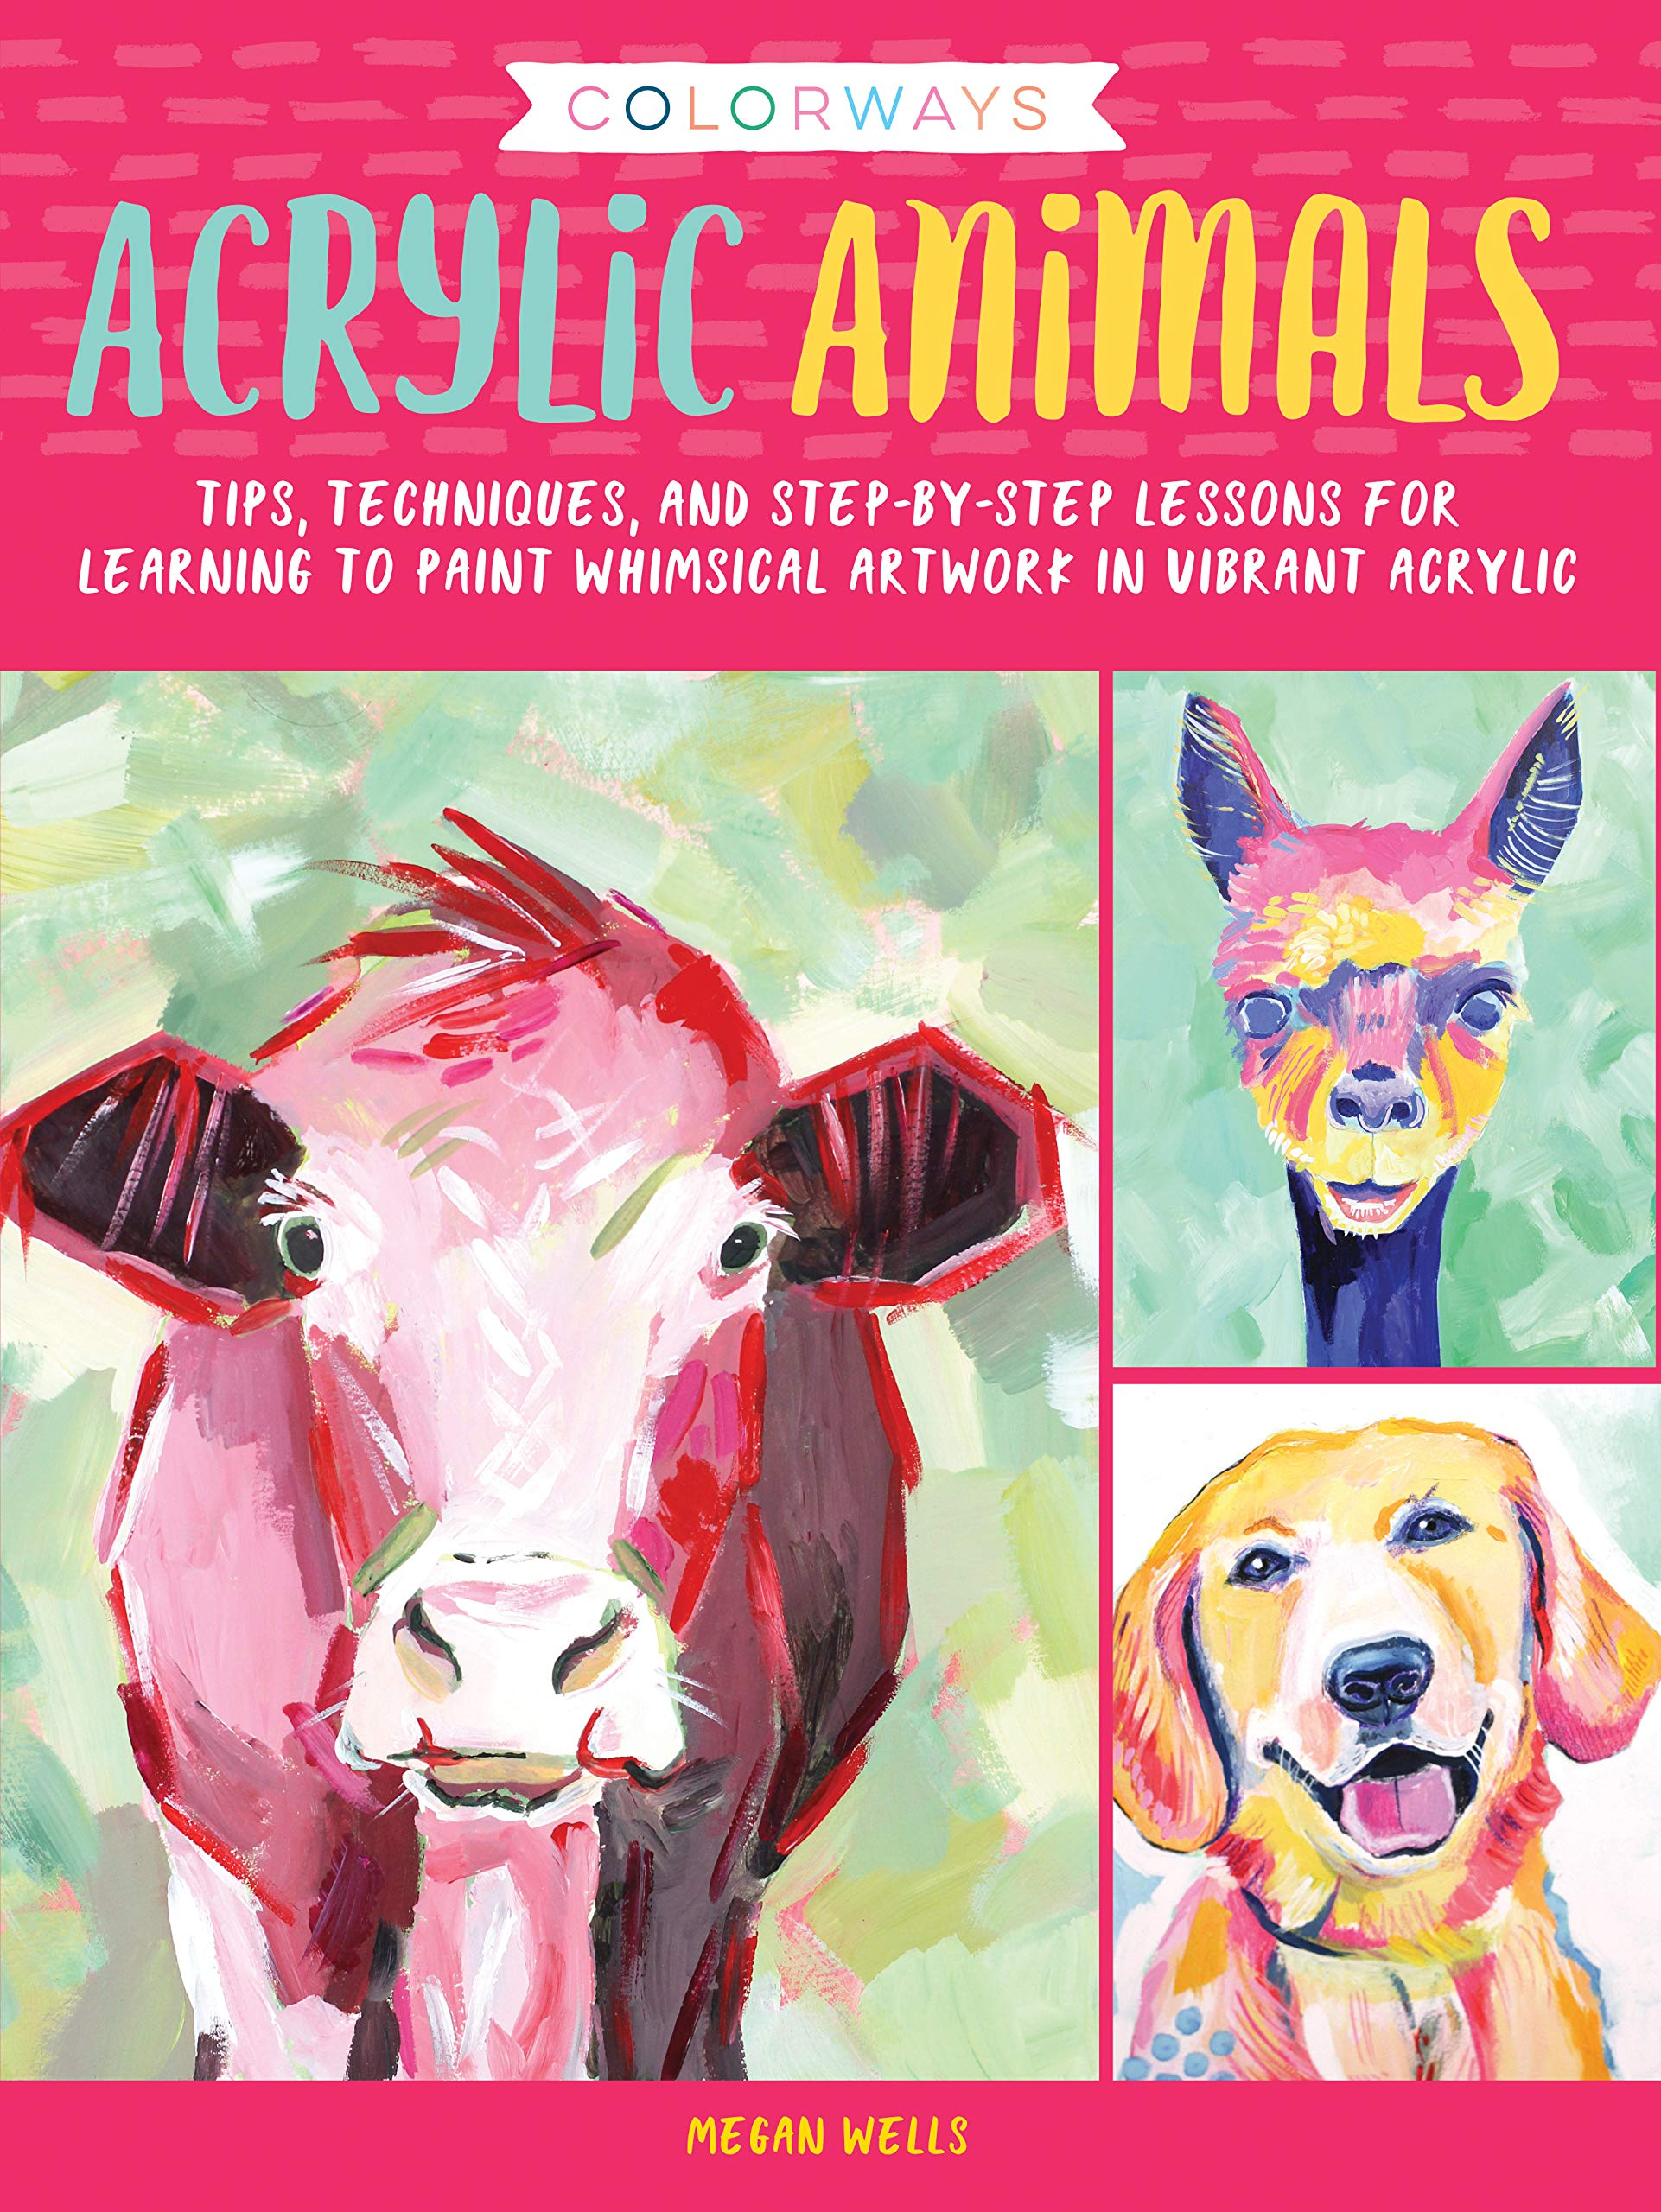 Colorways  Acrylic Animals  Tips Techniques And Step By Step Lessons For Learning To Paint Whimsical Artwork In Vibrant Acrylic